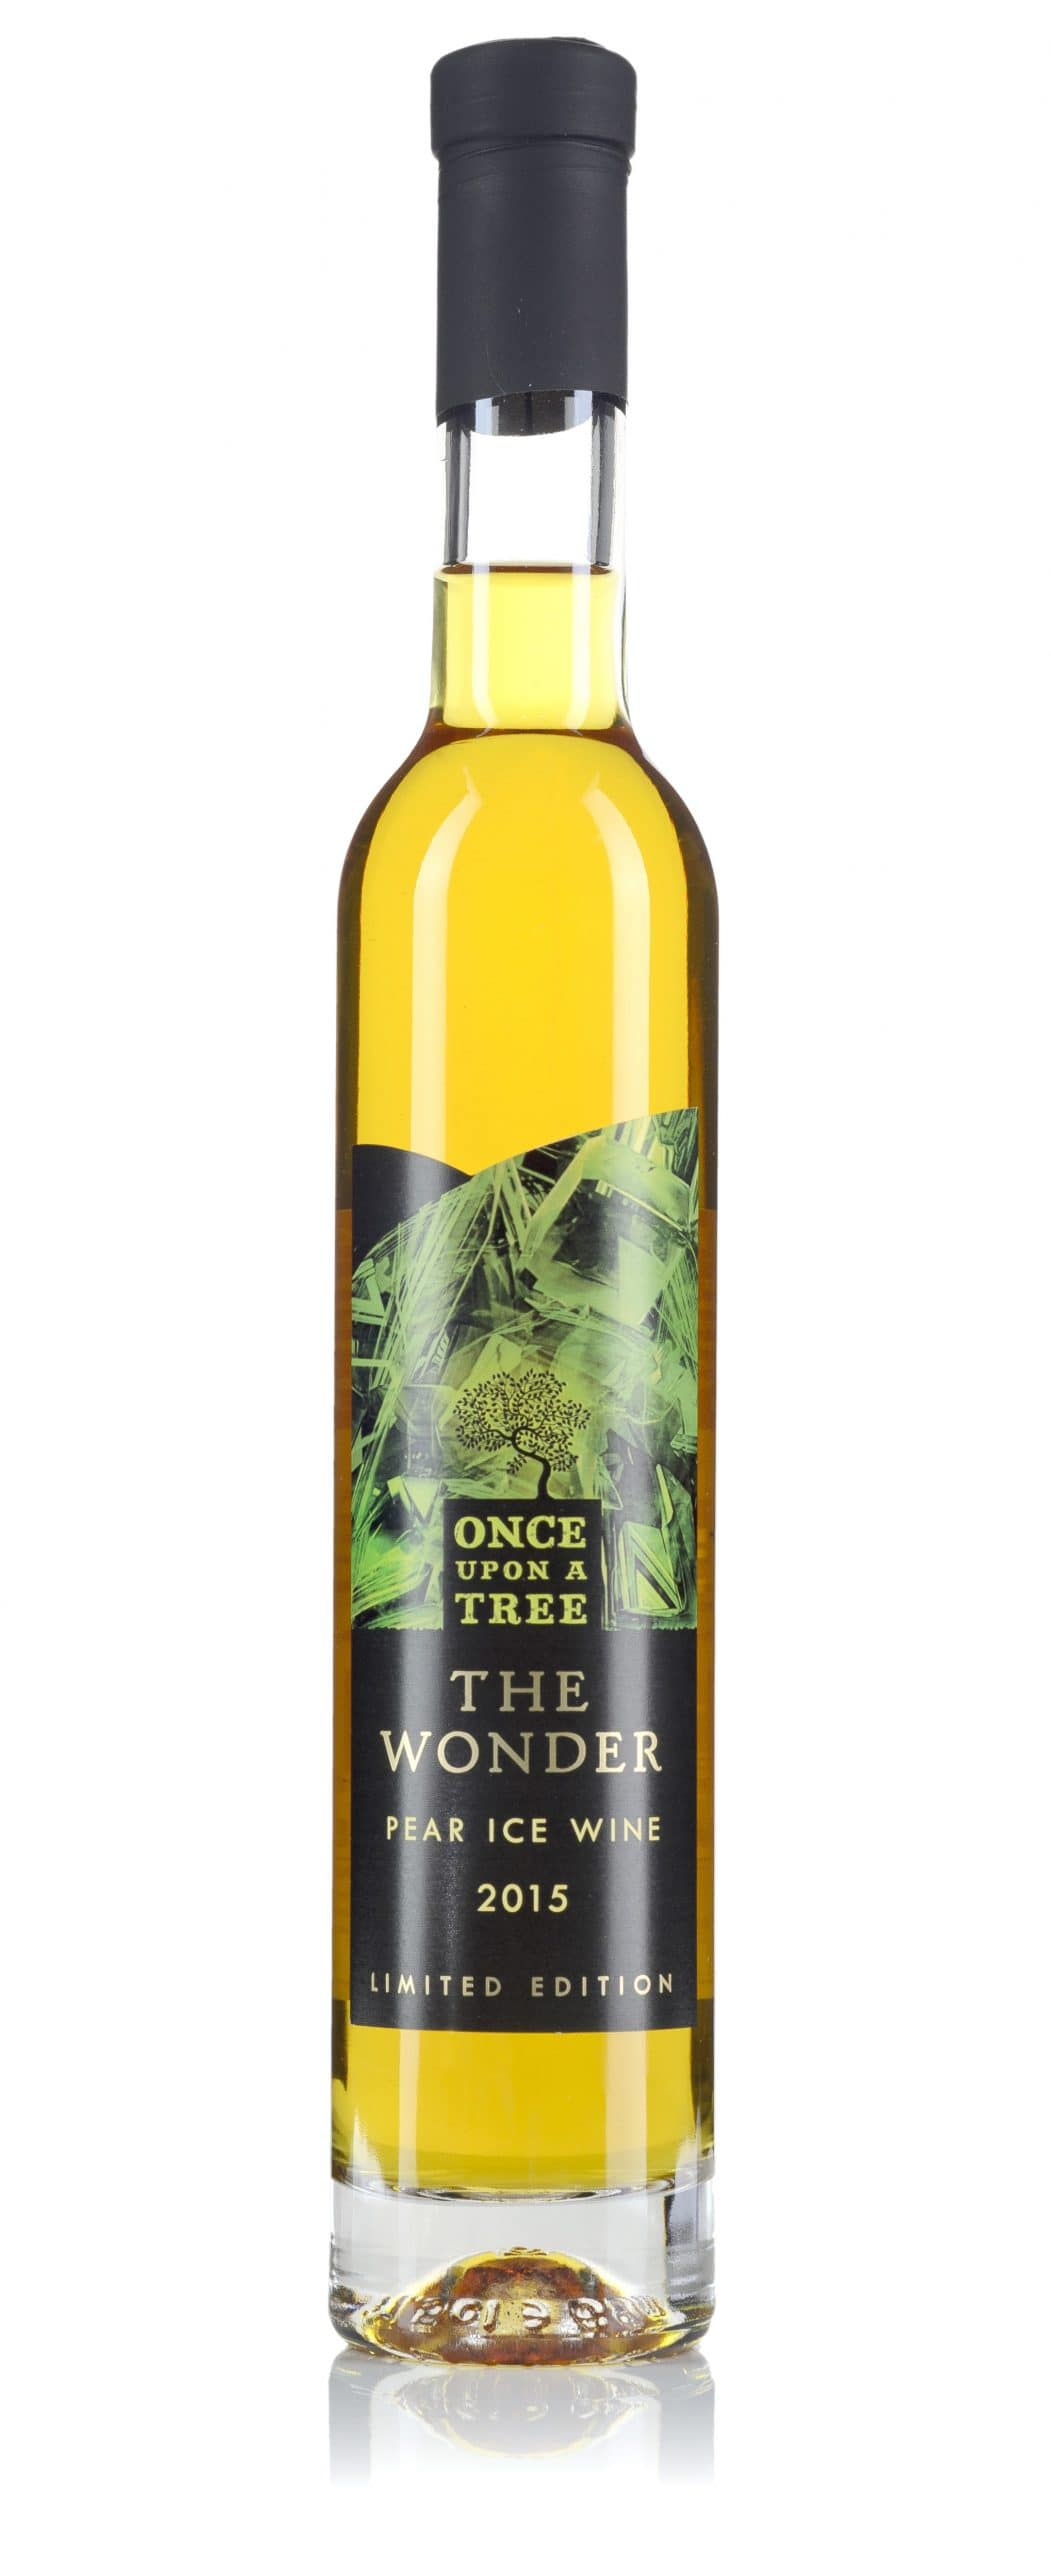 Once Upon A Tree The Wonder Pear Ice Cider 2015